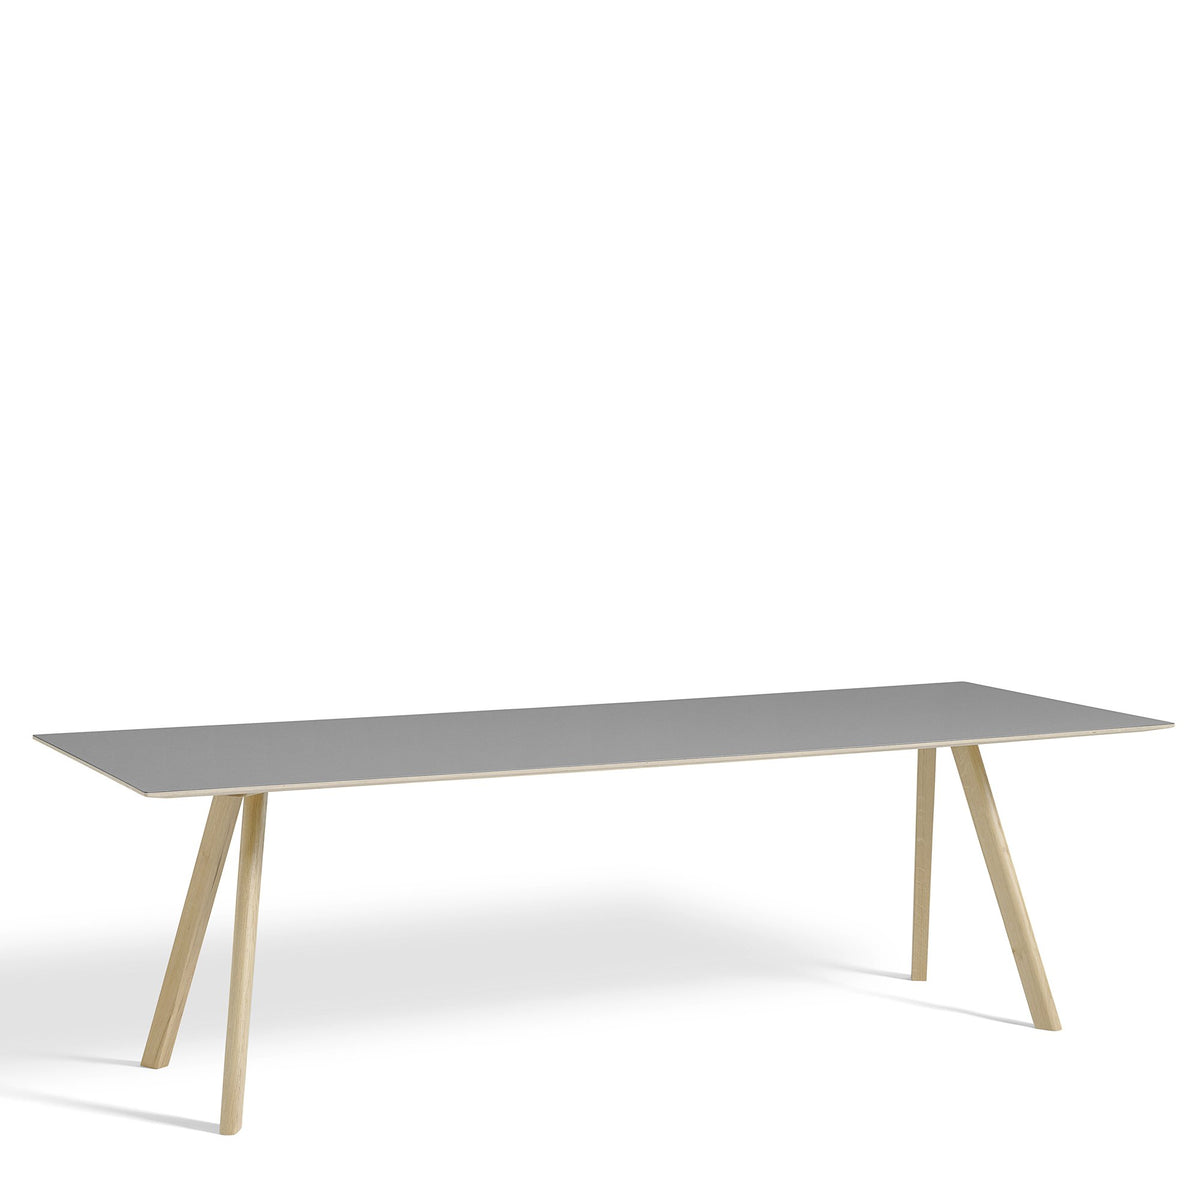 HAY CPH Table 2500mm Forbo Ash 4132 with Matt Lacquered Oak Base